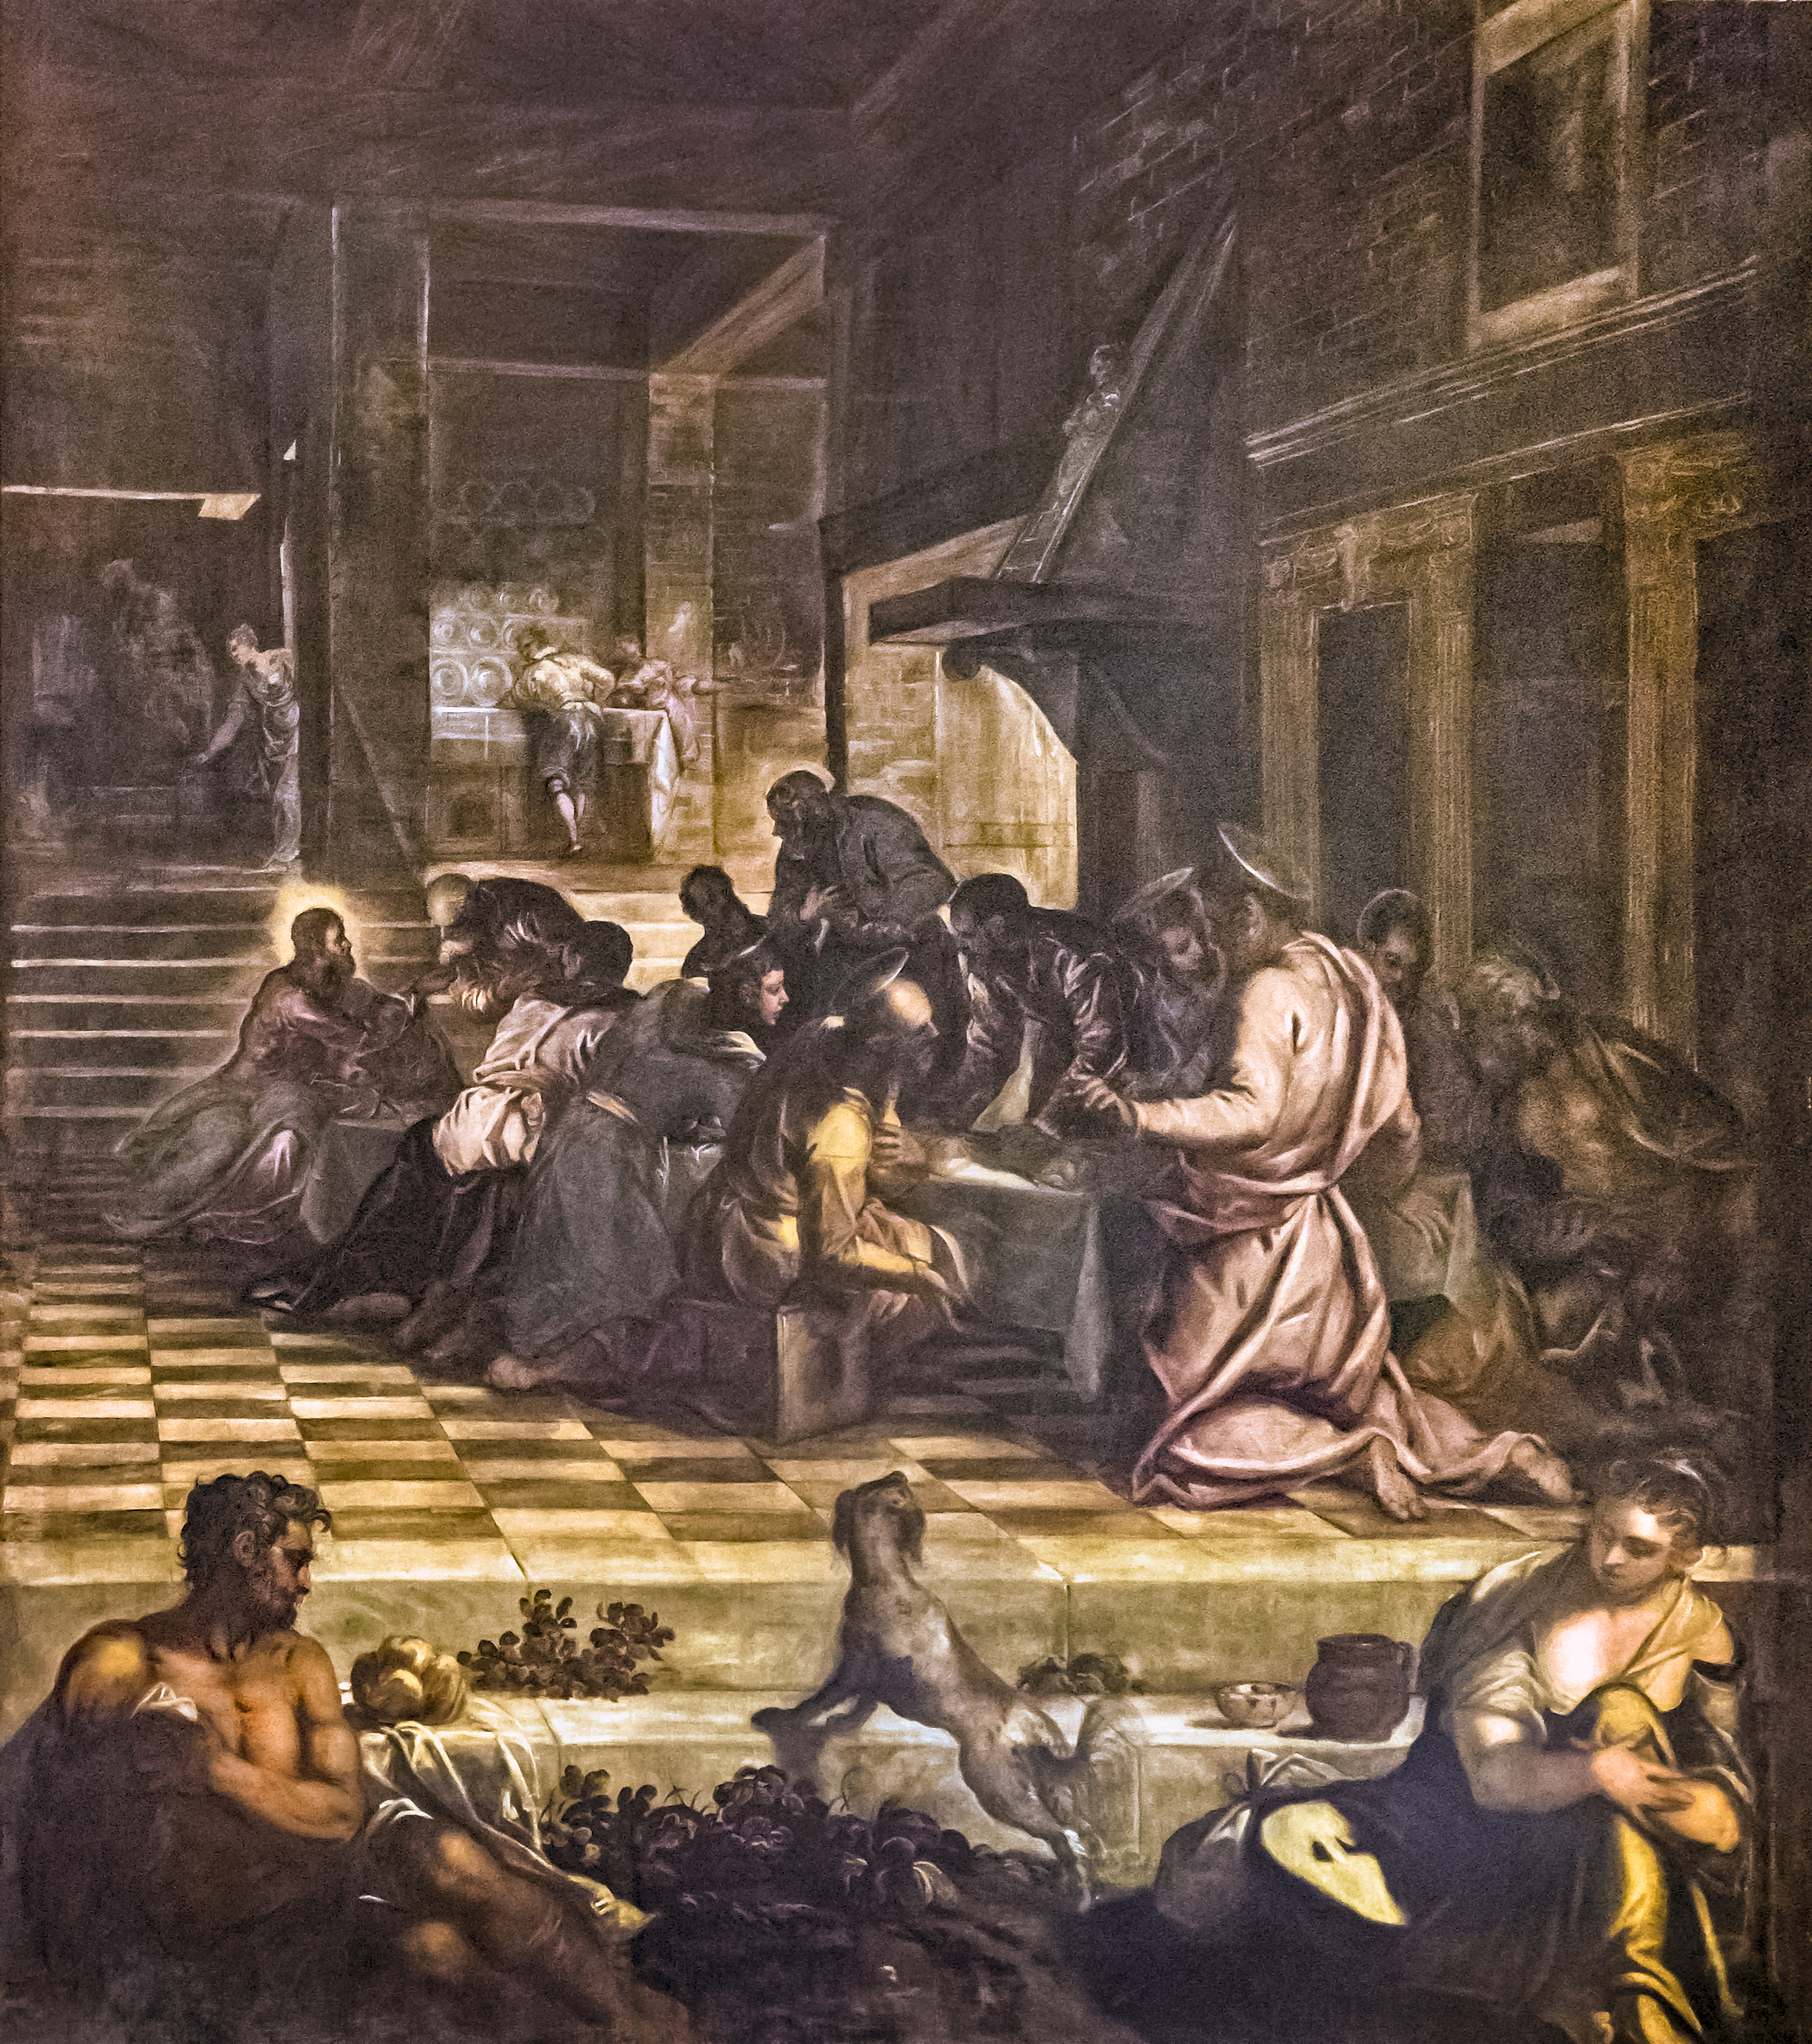 where is last supper painting located today